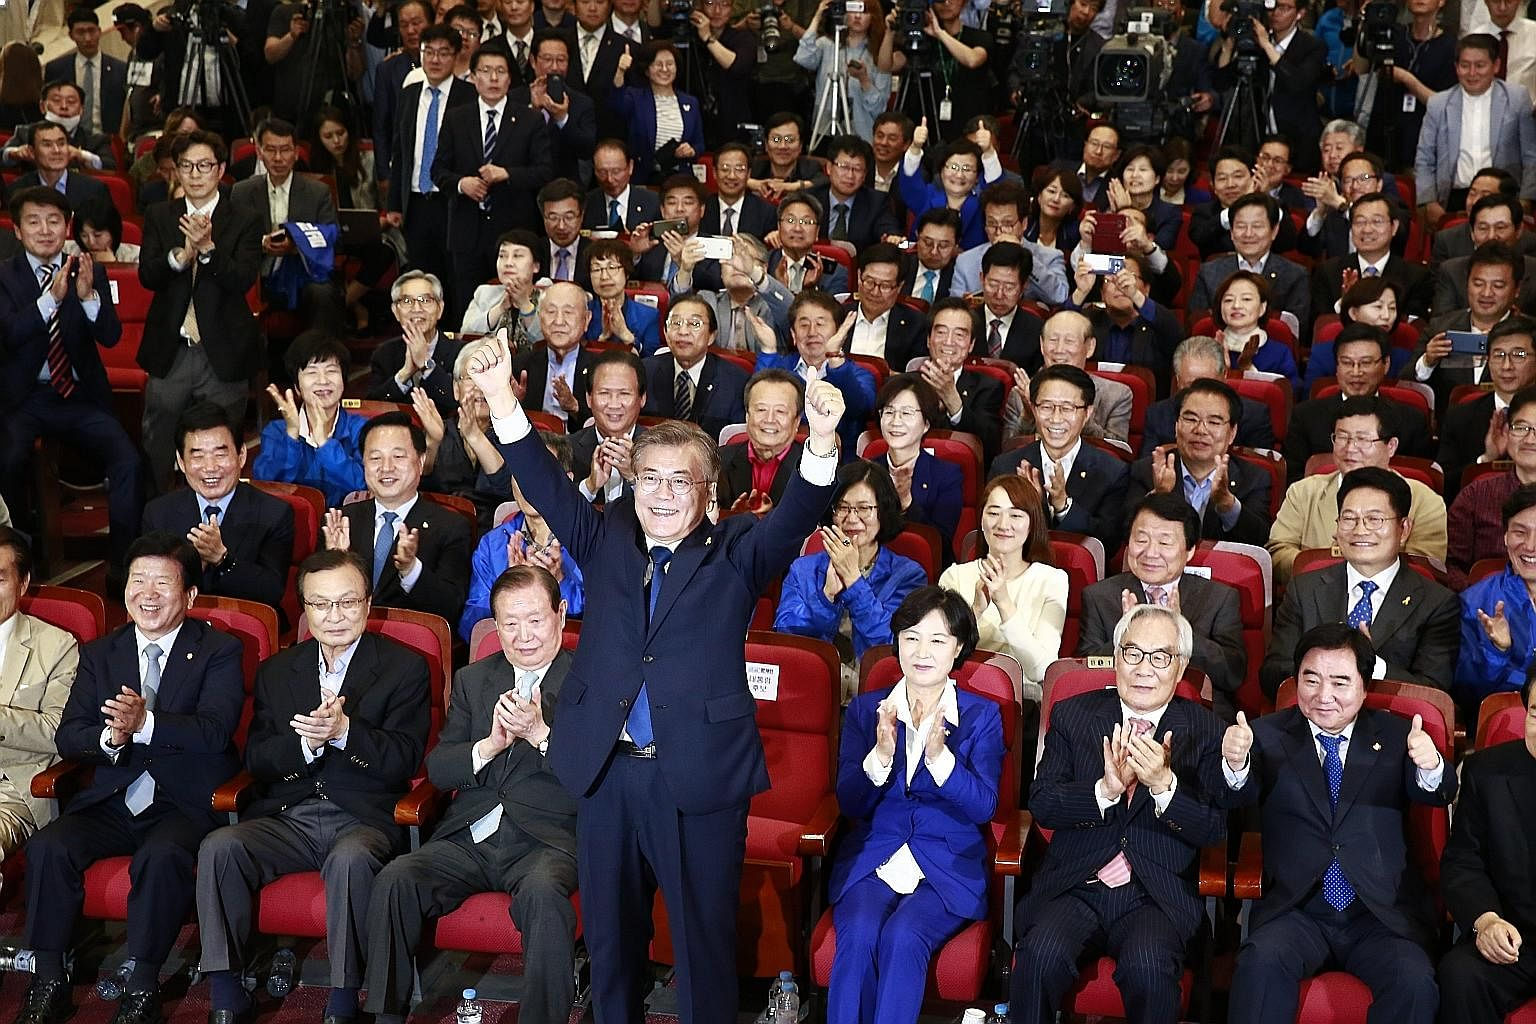 Mr Moon Jae In of the Democratic Party celebrating with supporters at the National Assembly in Seoul, after exit polls showed he would be South Korea's new president. People watching a live broadcast of election coverage in Seoul's Gwanghwamun Square